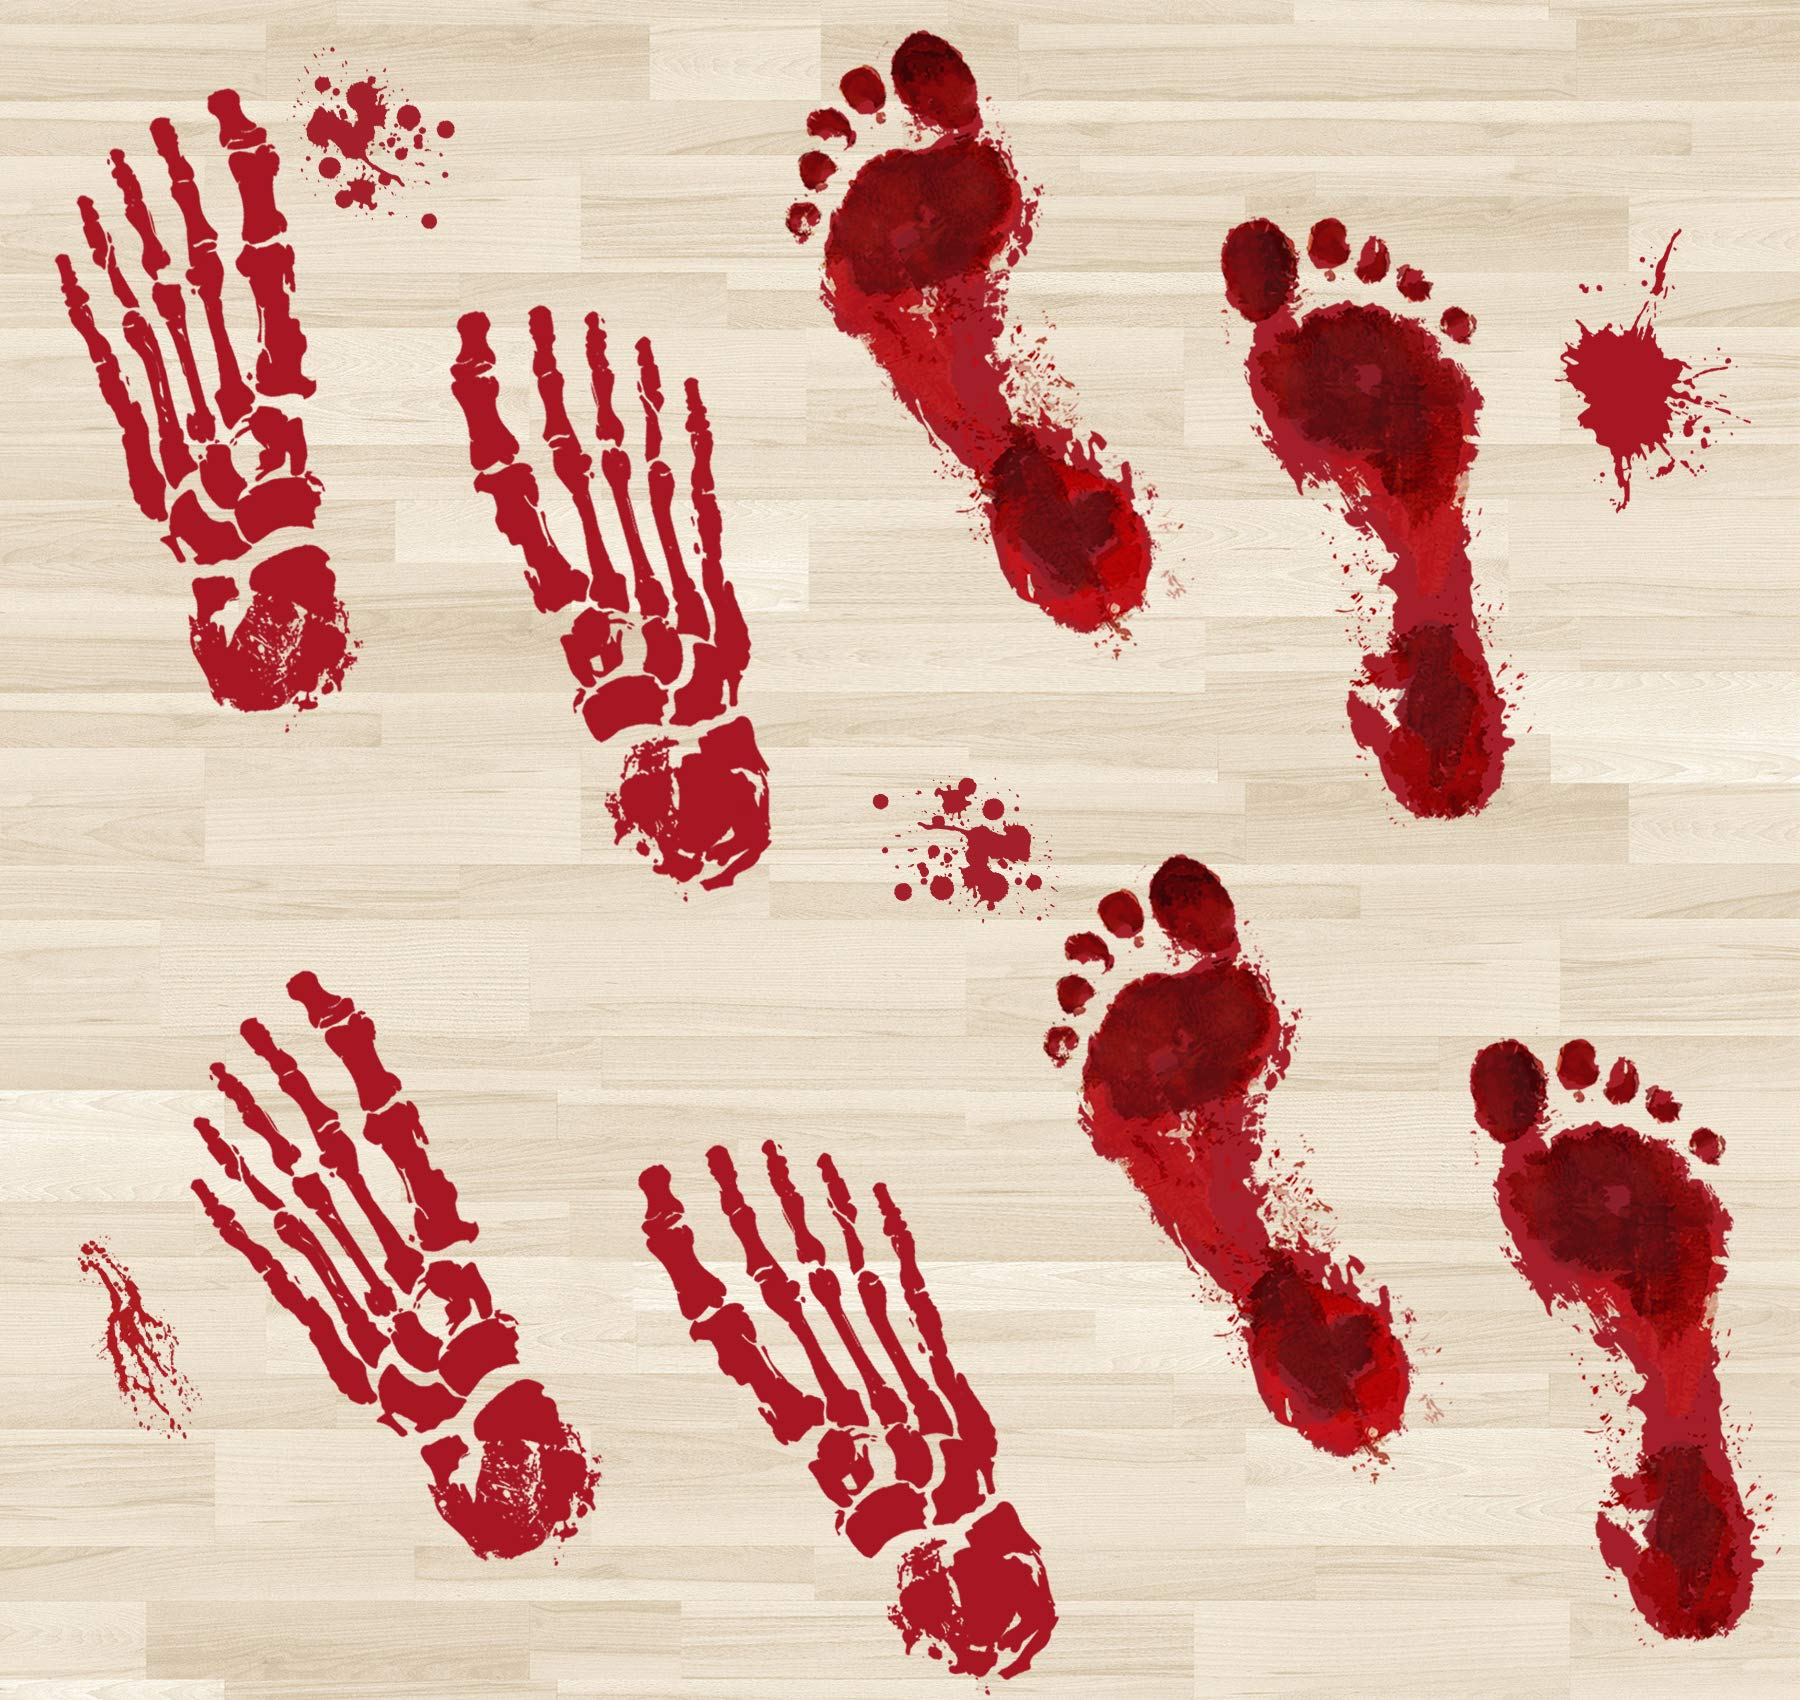 Your Little Lovely Bloody Footprints Floor Decals Clings - Halloween Zombie Vampire Party Stickers Decorations Supplies 84Ct